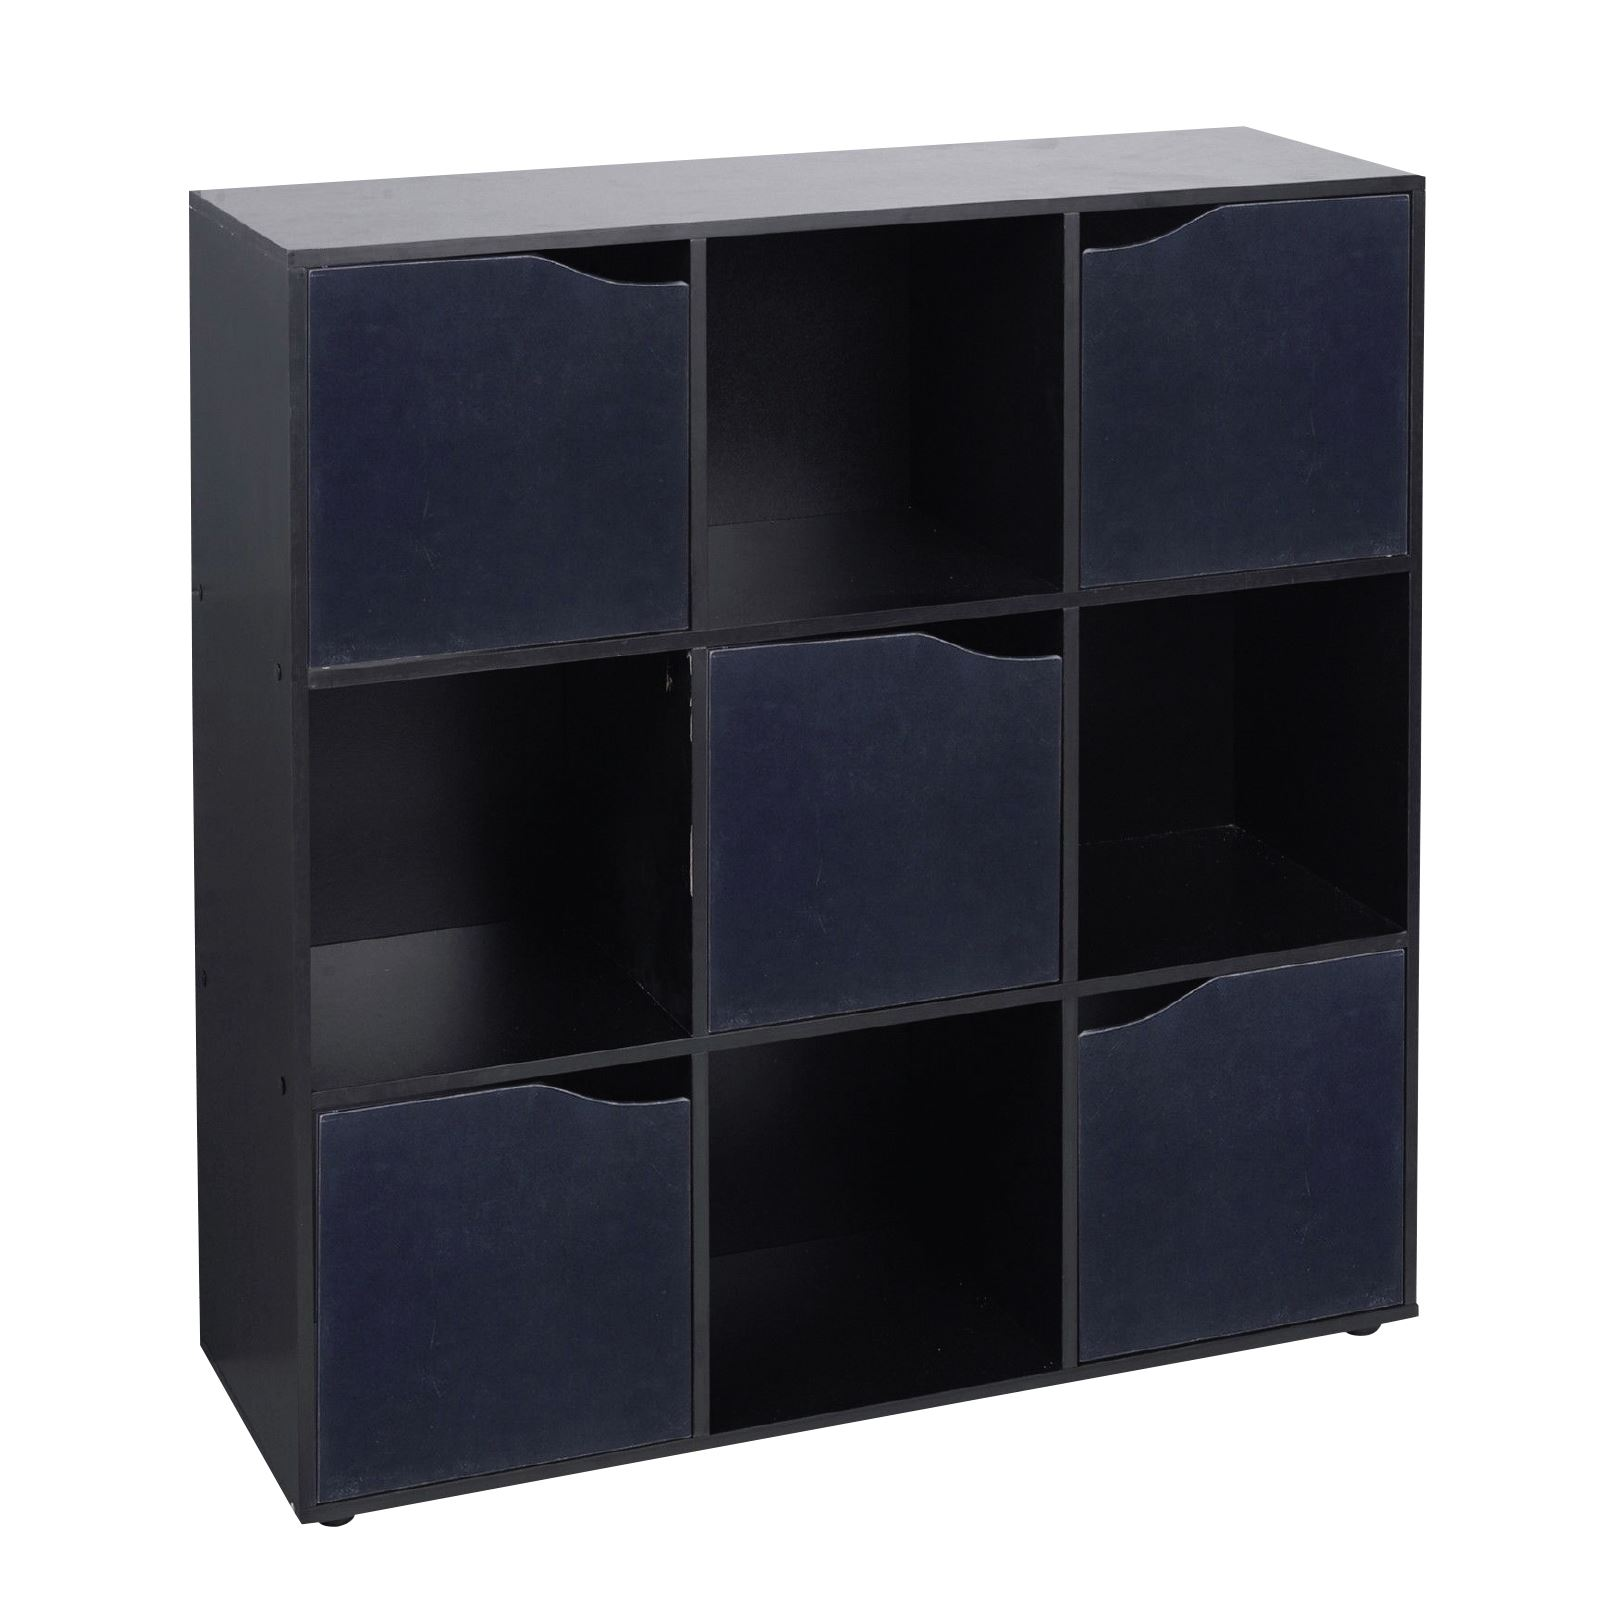 Wooden 9 Cube 5 Doors Storage Unit Cupboard Bookcase